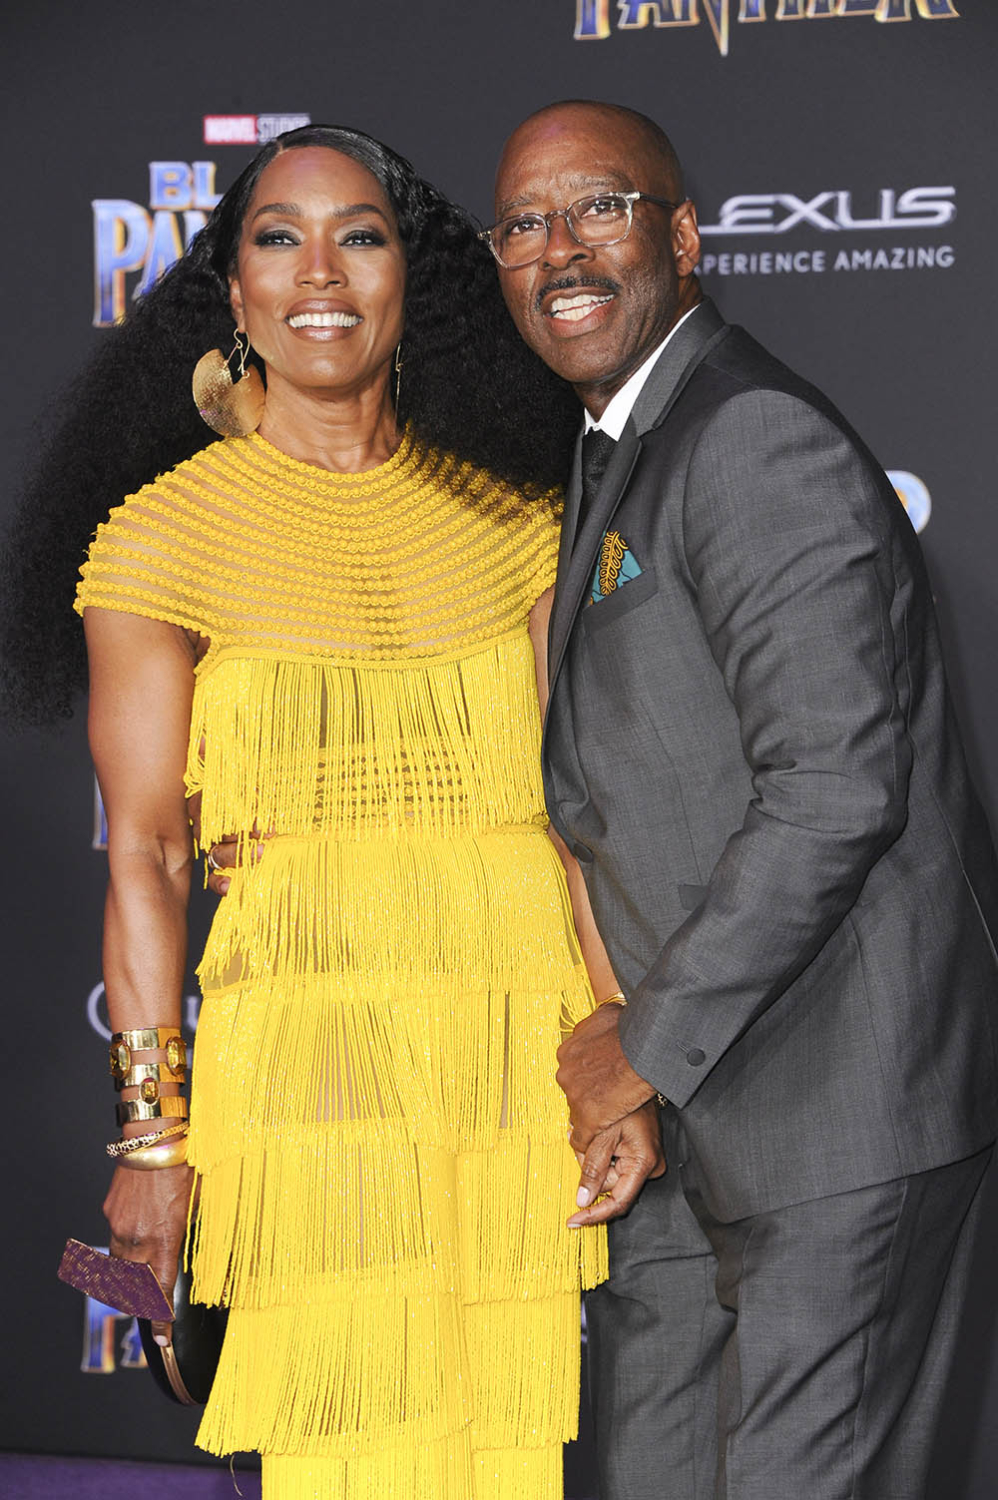 Best Interior Design Schools >> Courtney B. Vance & Angela Bassett at Film Premiere of Black Panther | Sandra Rose